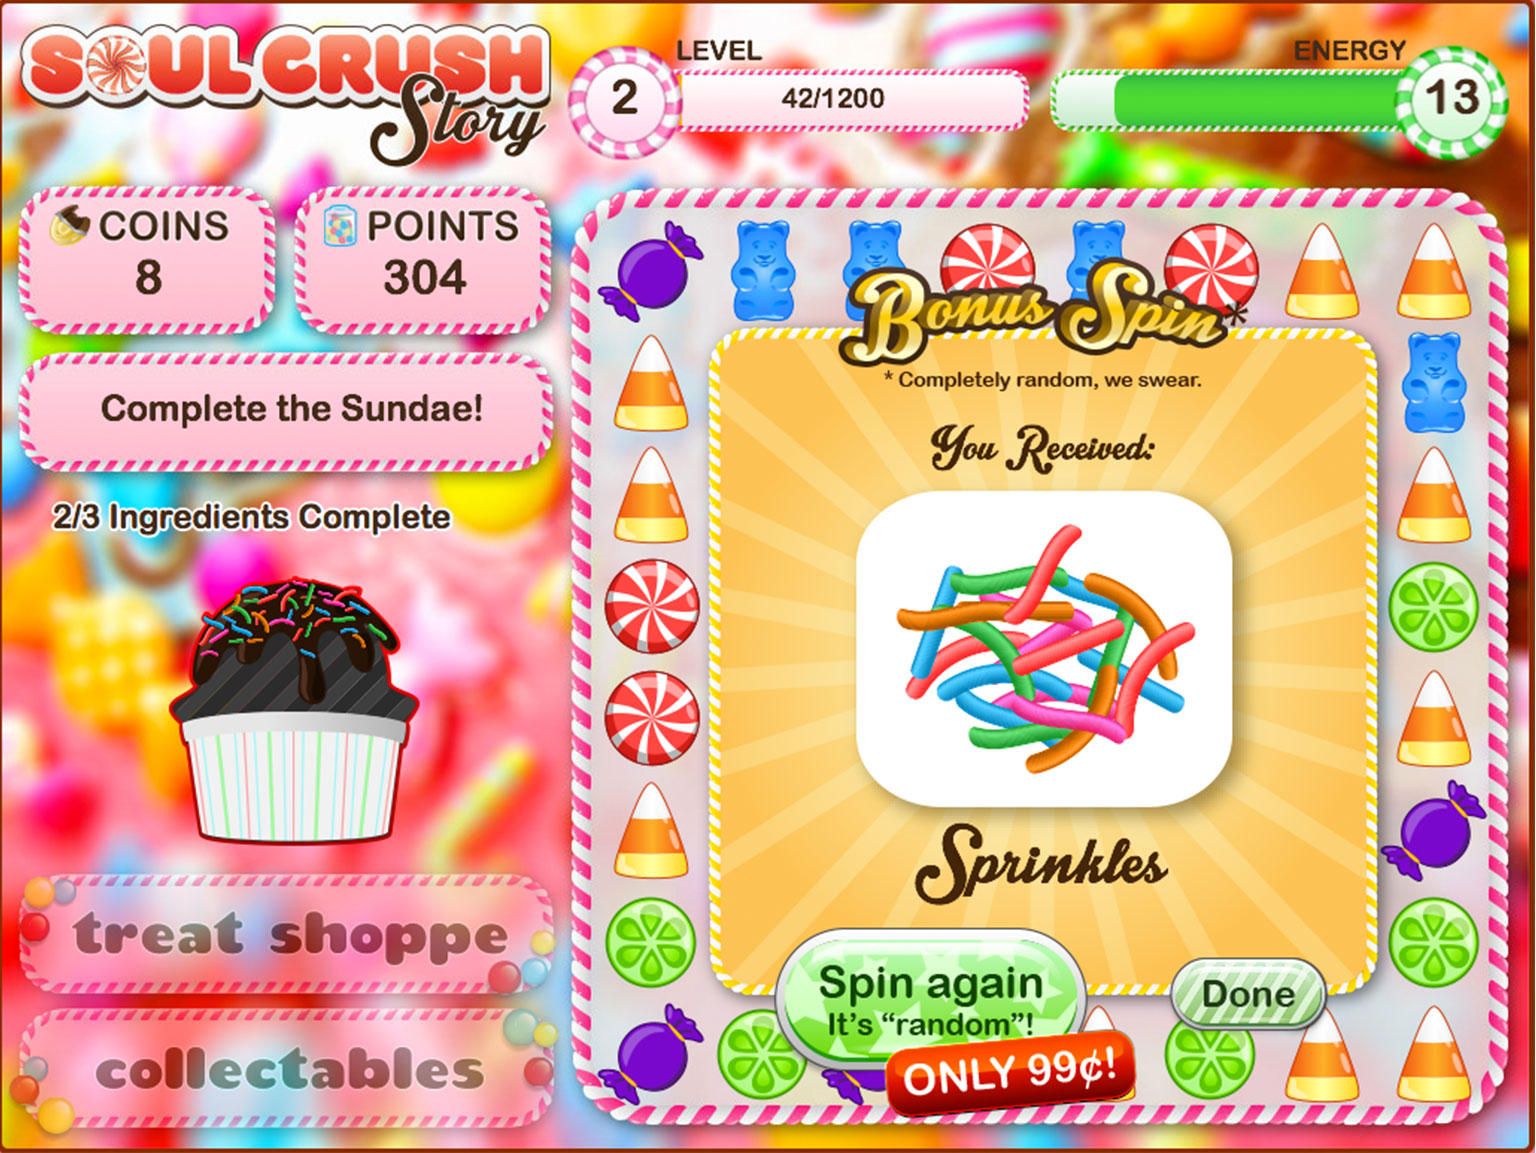 """Screen from online gambling game parody Soul Crush Story with brightly coloured candy and messages including 'Spin again. It's """"random""""! Only 99c!"""